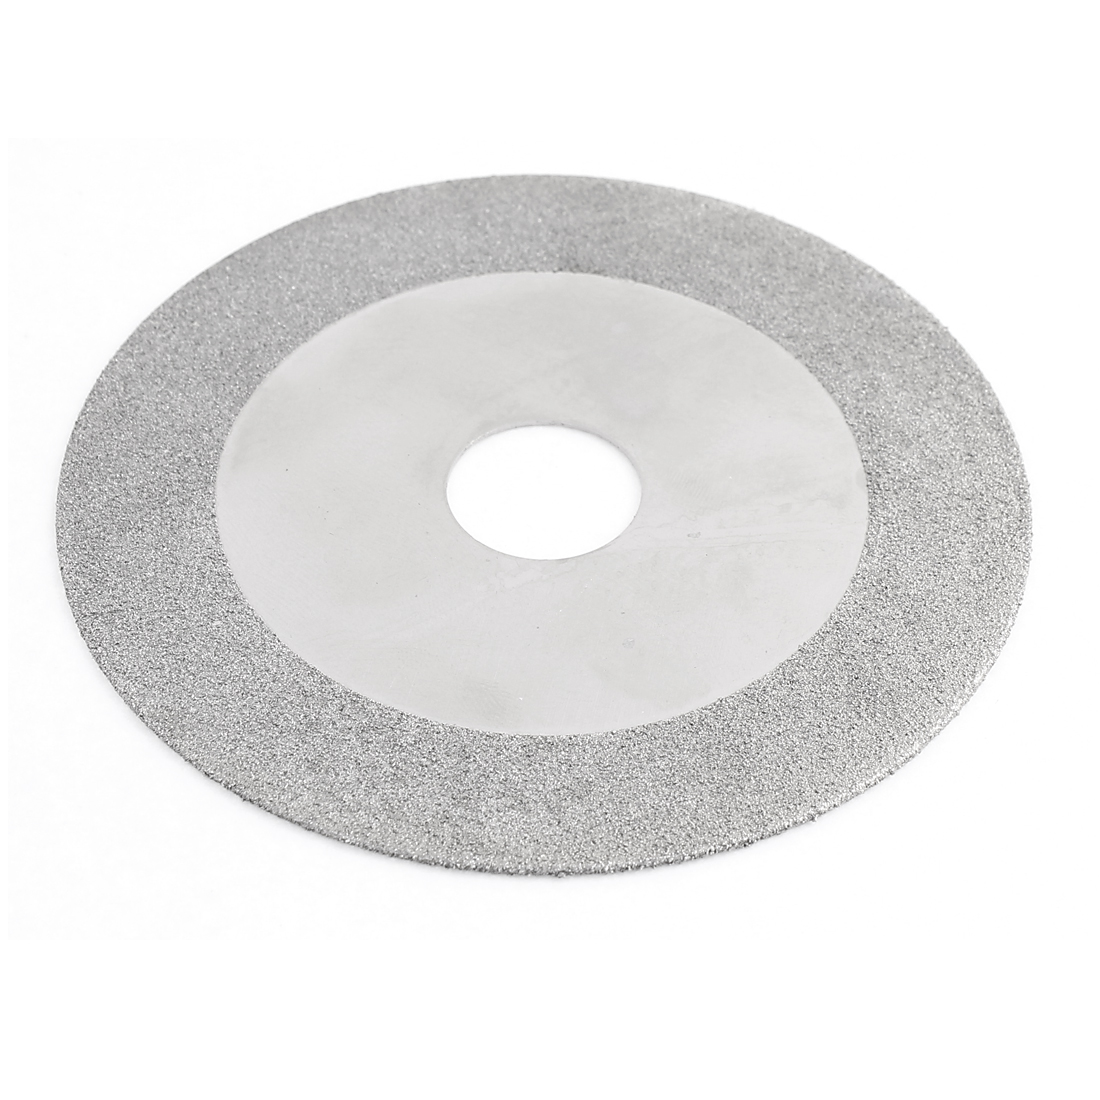 "Glass Tile Grinding Cutter Cutting Wheel Disc 4"" x 3/4"" Silver Tone"